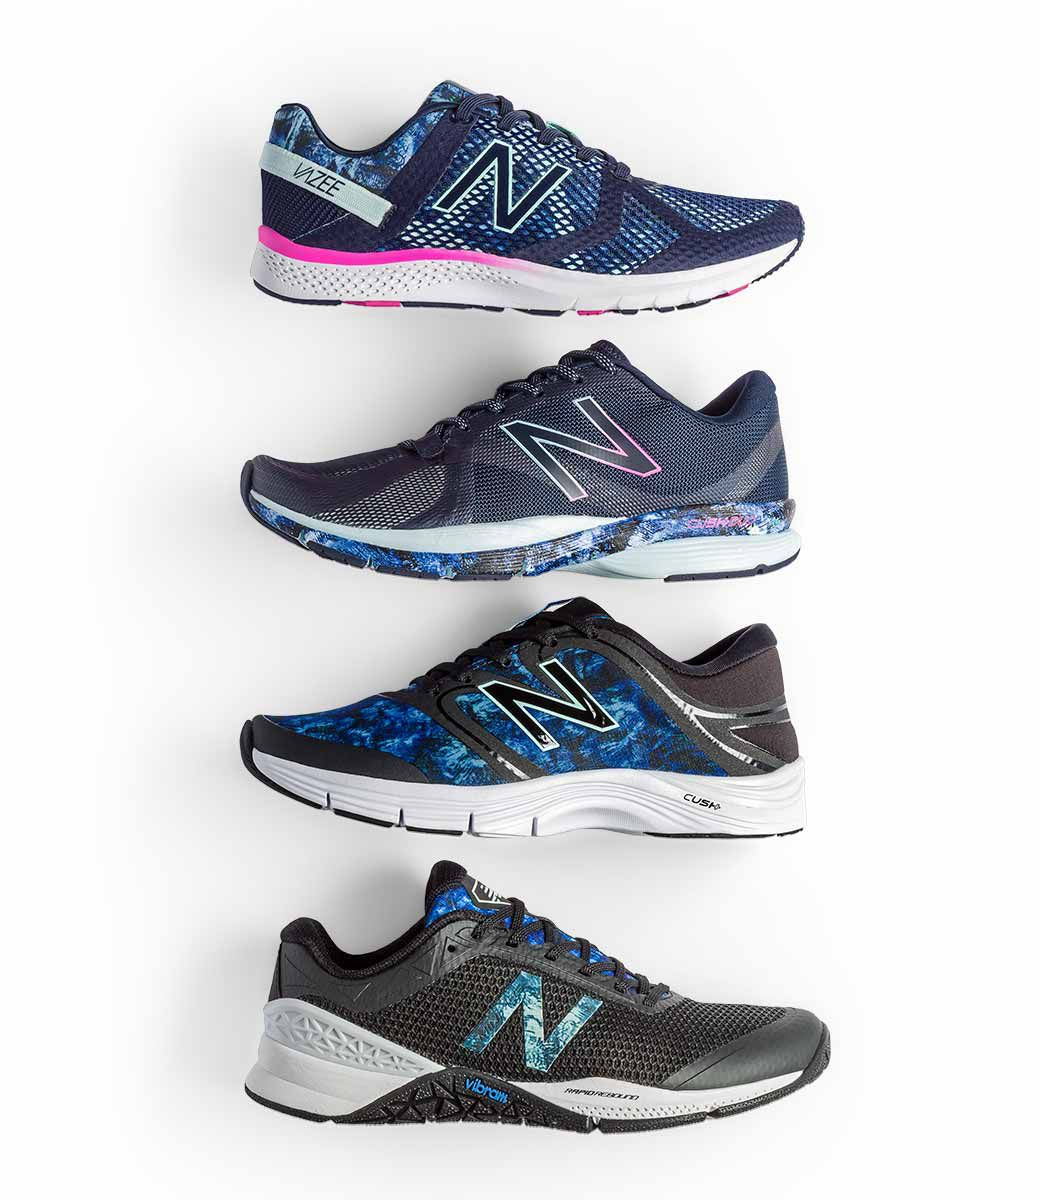 New Balance US Womens December DTC Exclusives,